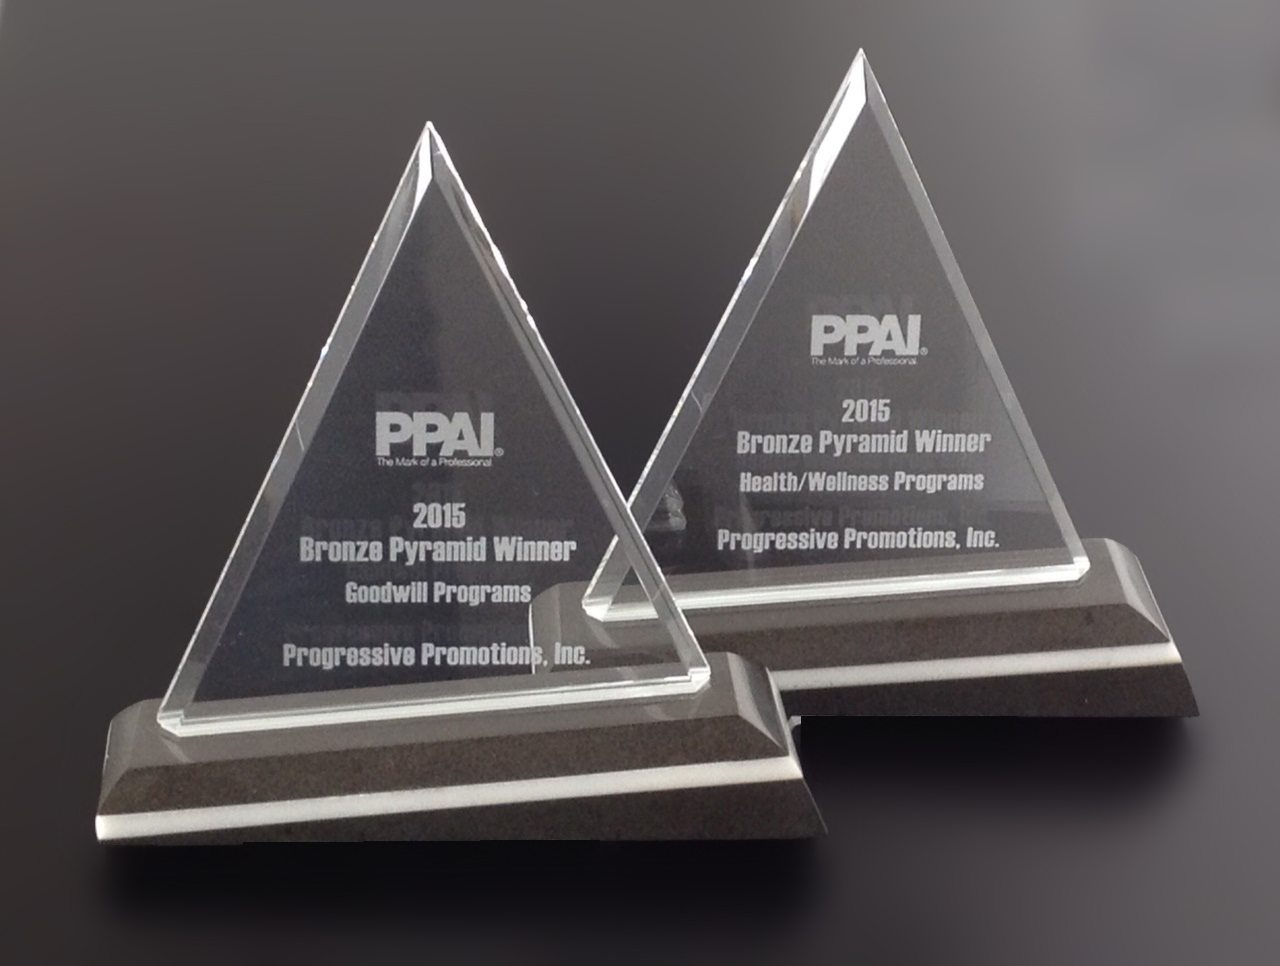 Our 2015 Bronze Pyramid Awards